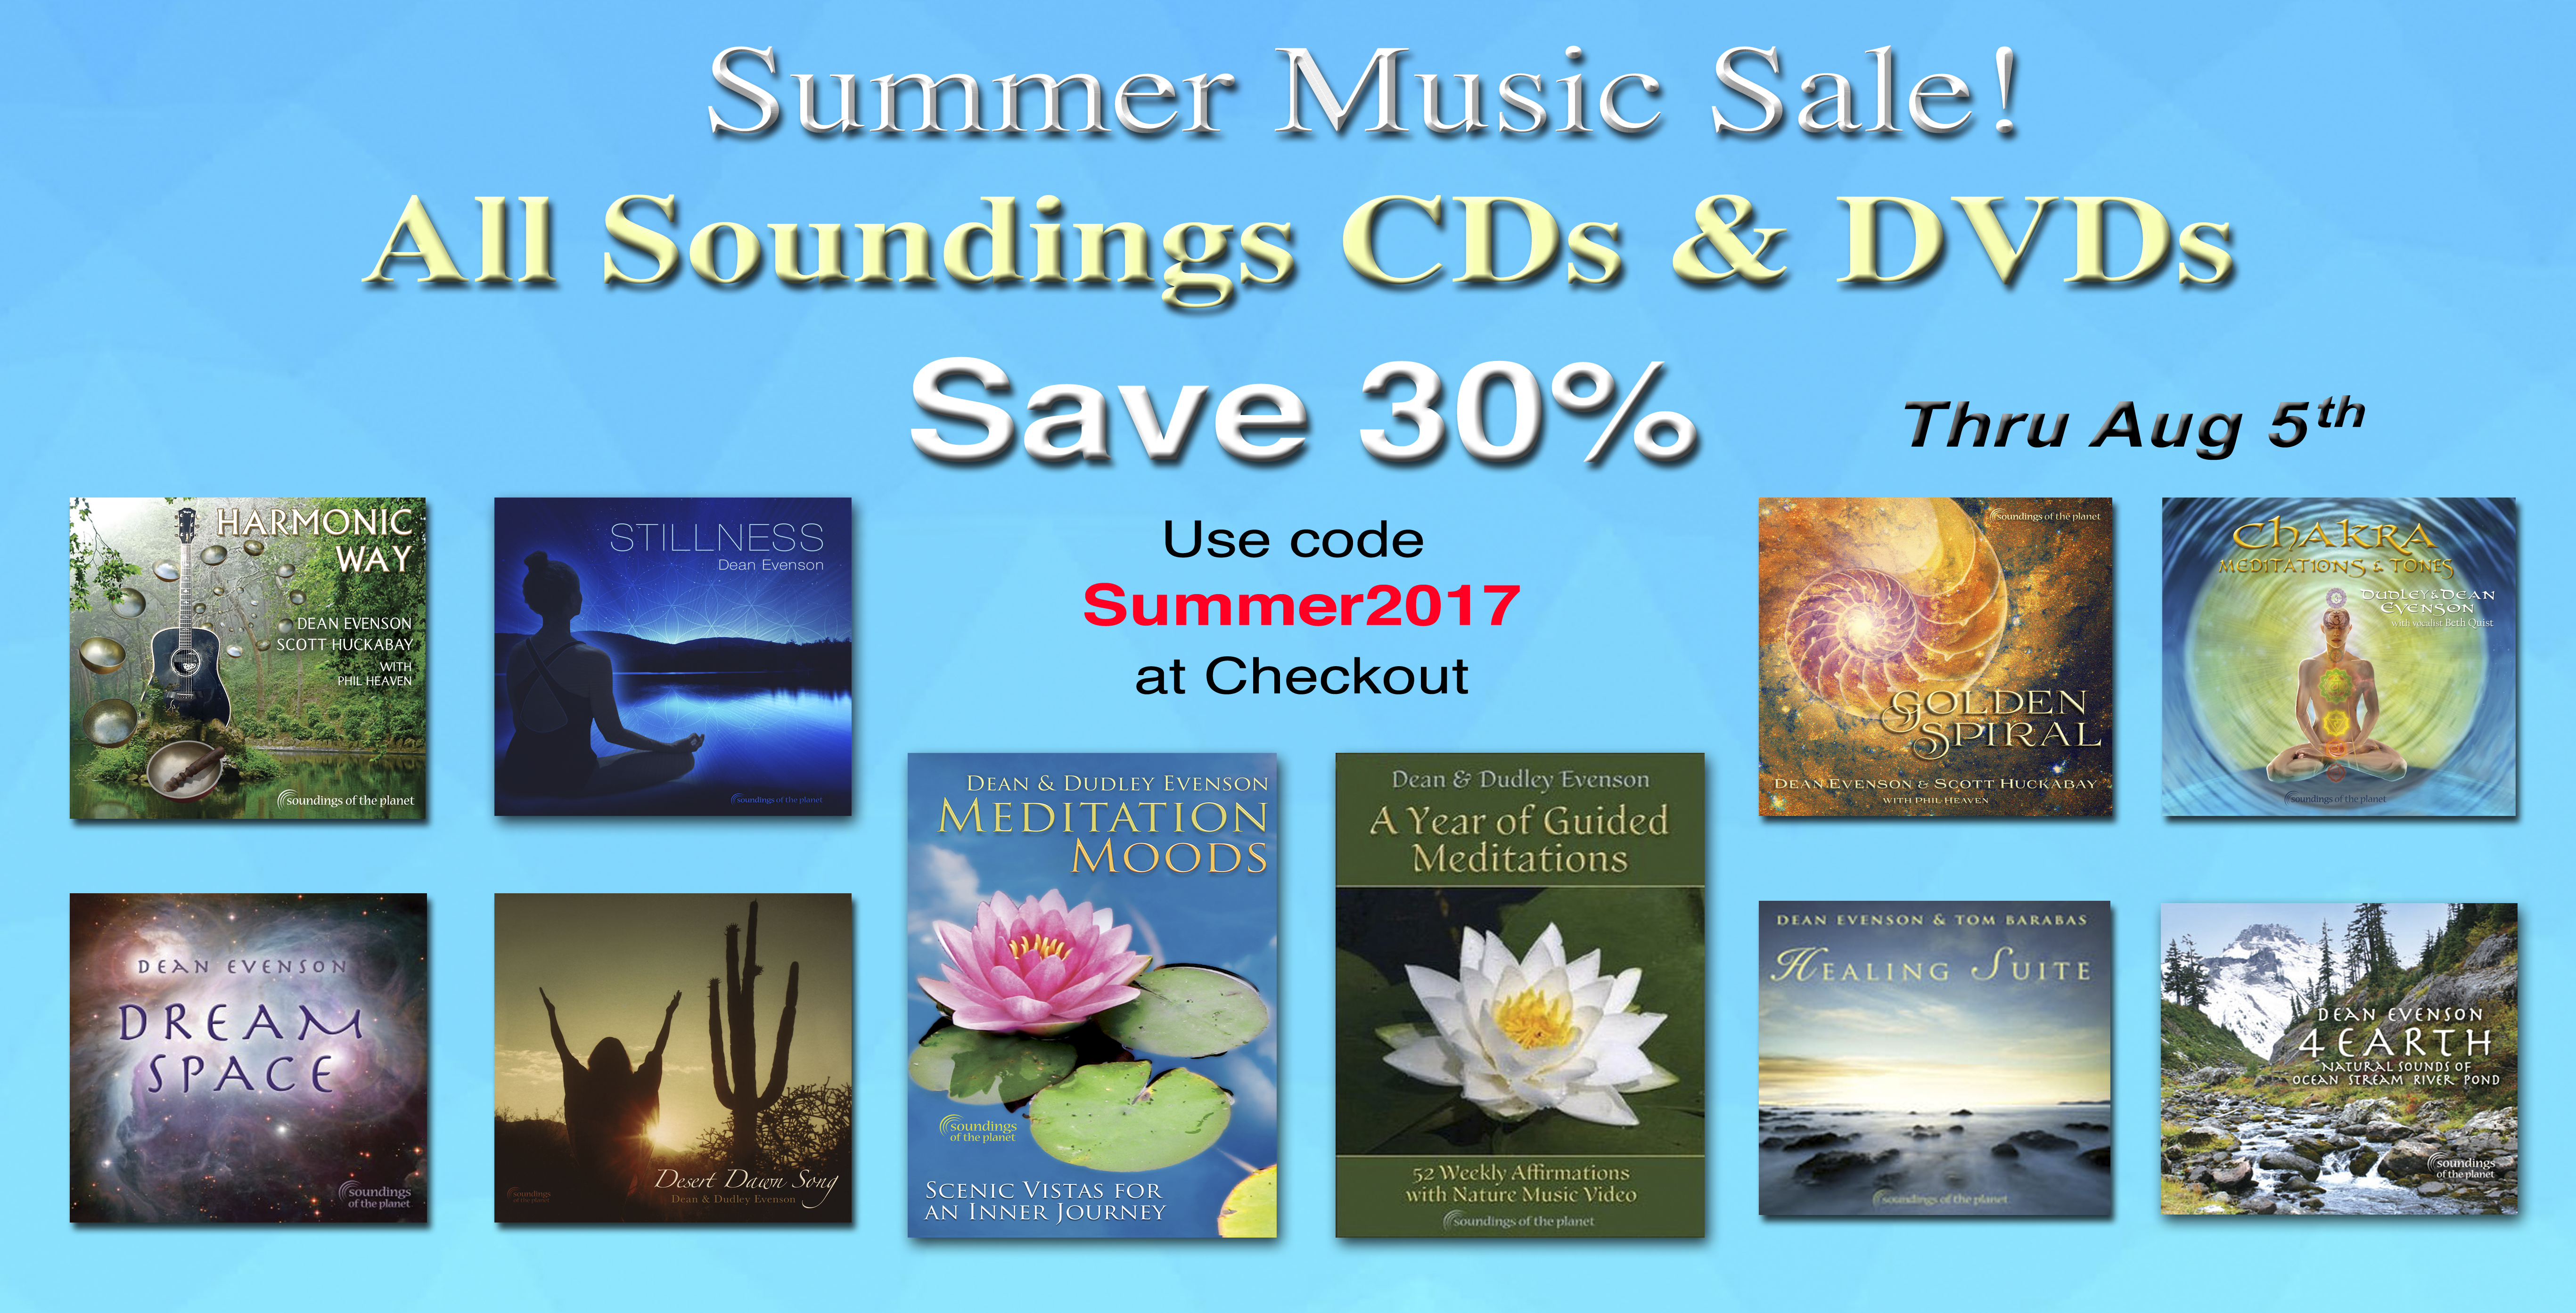 Summer Music Sale 2017edited 2 Soundings Of The Planet